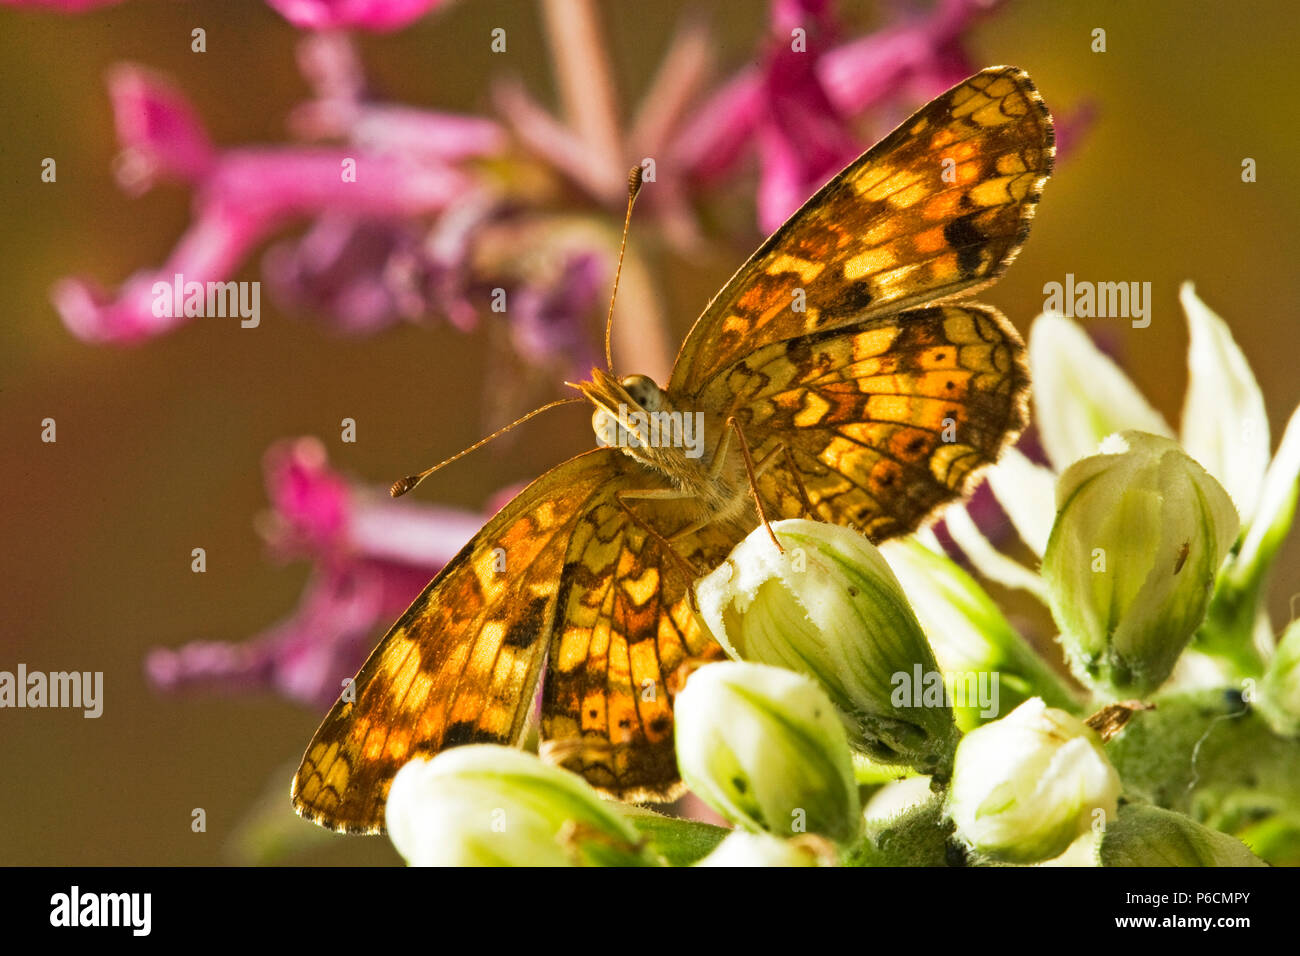 Ventral detail of a field crescent butterfly, Phyciodes pulchella, on the bud of a wildflower in the Cascade Mountains of central Oregon. - Stock Image